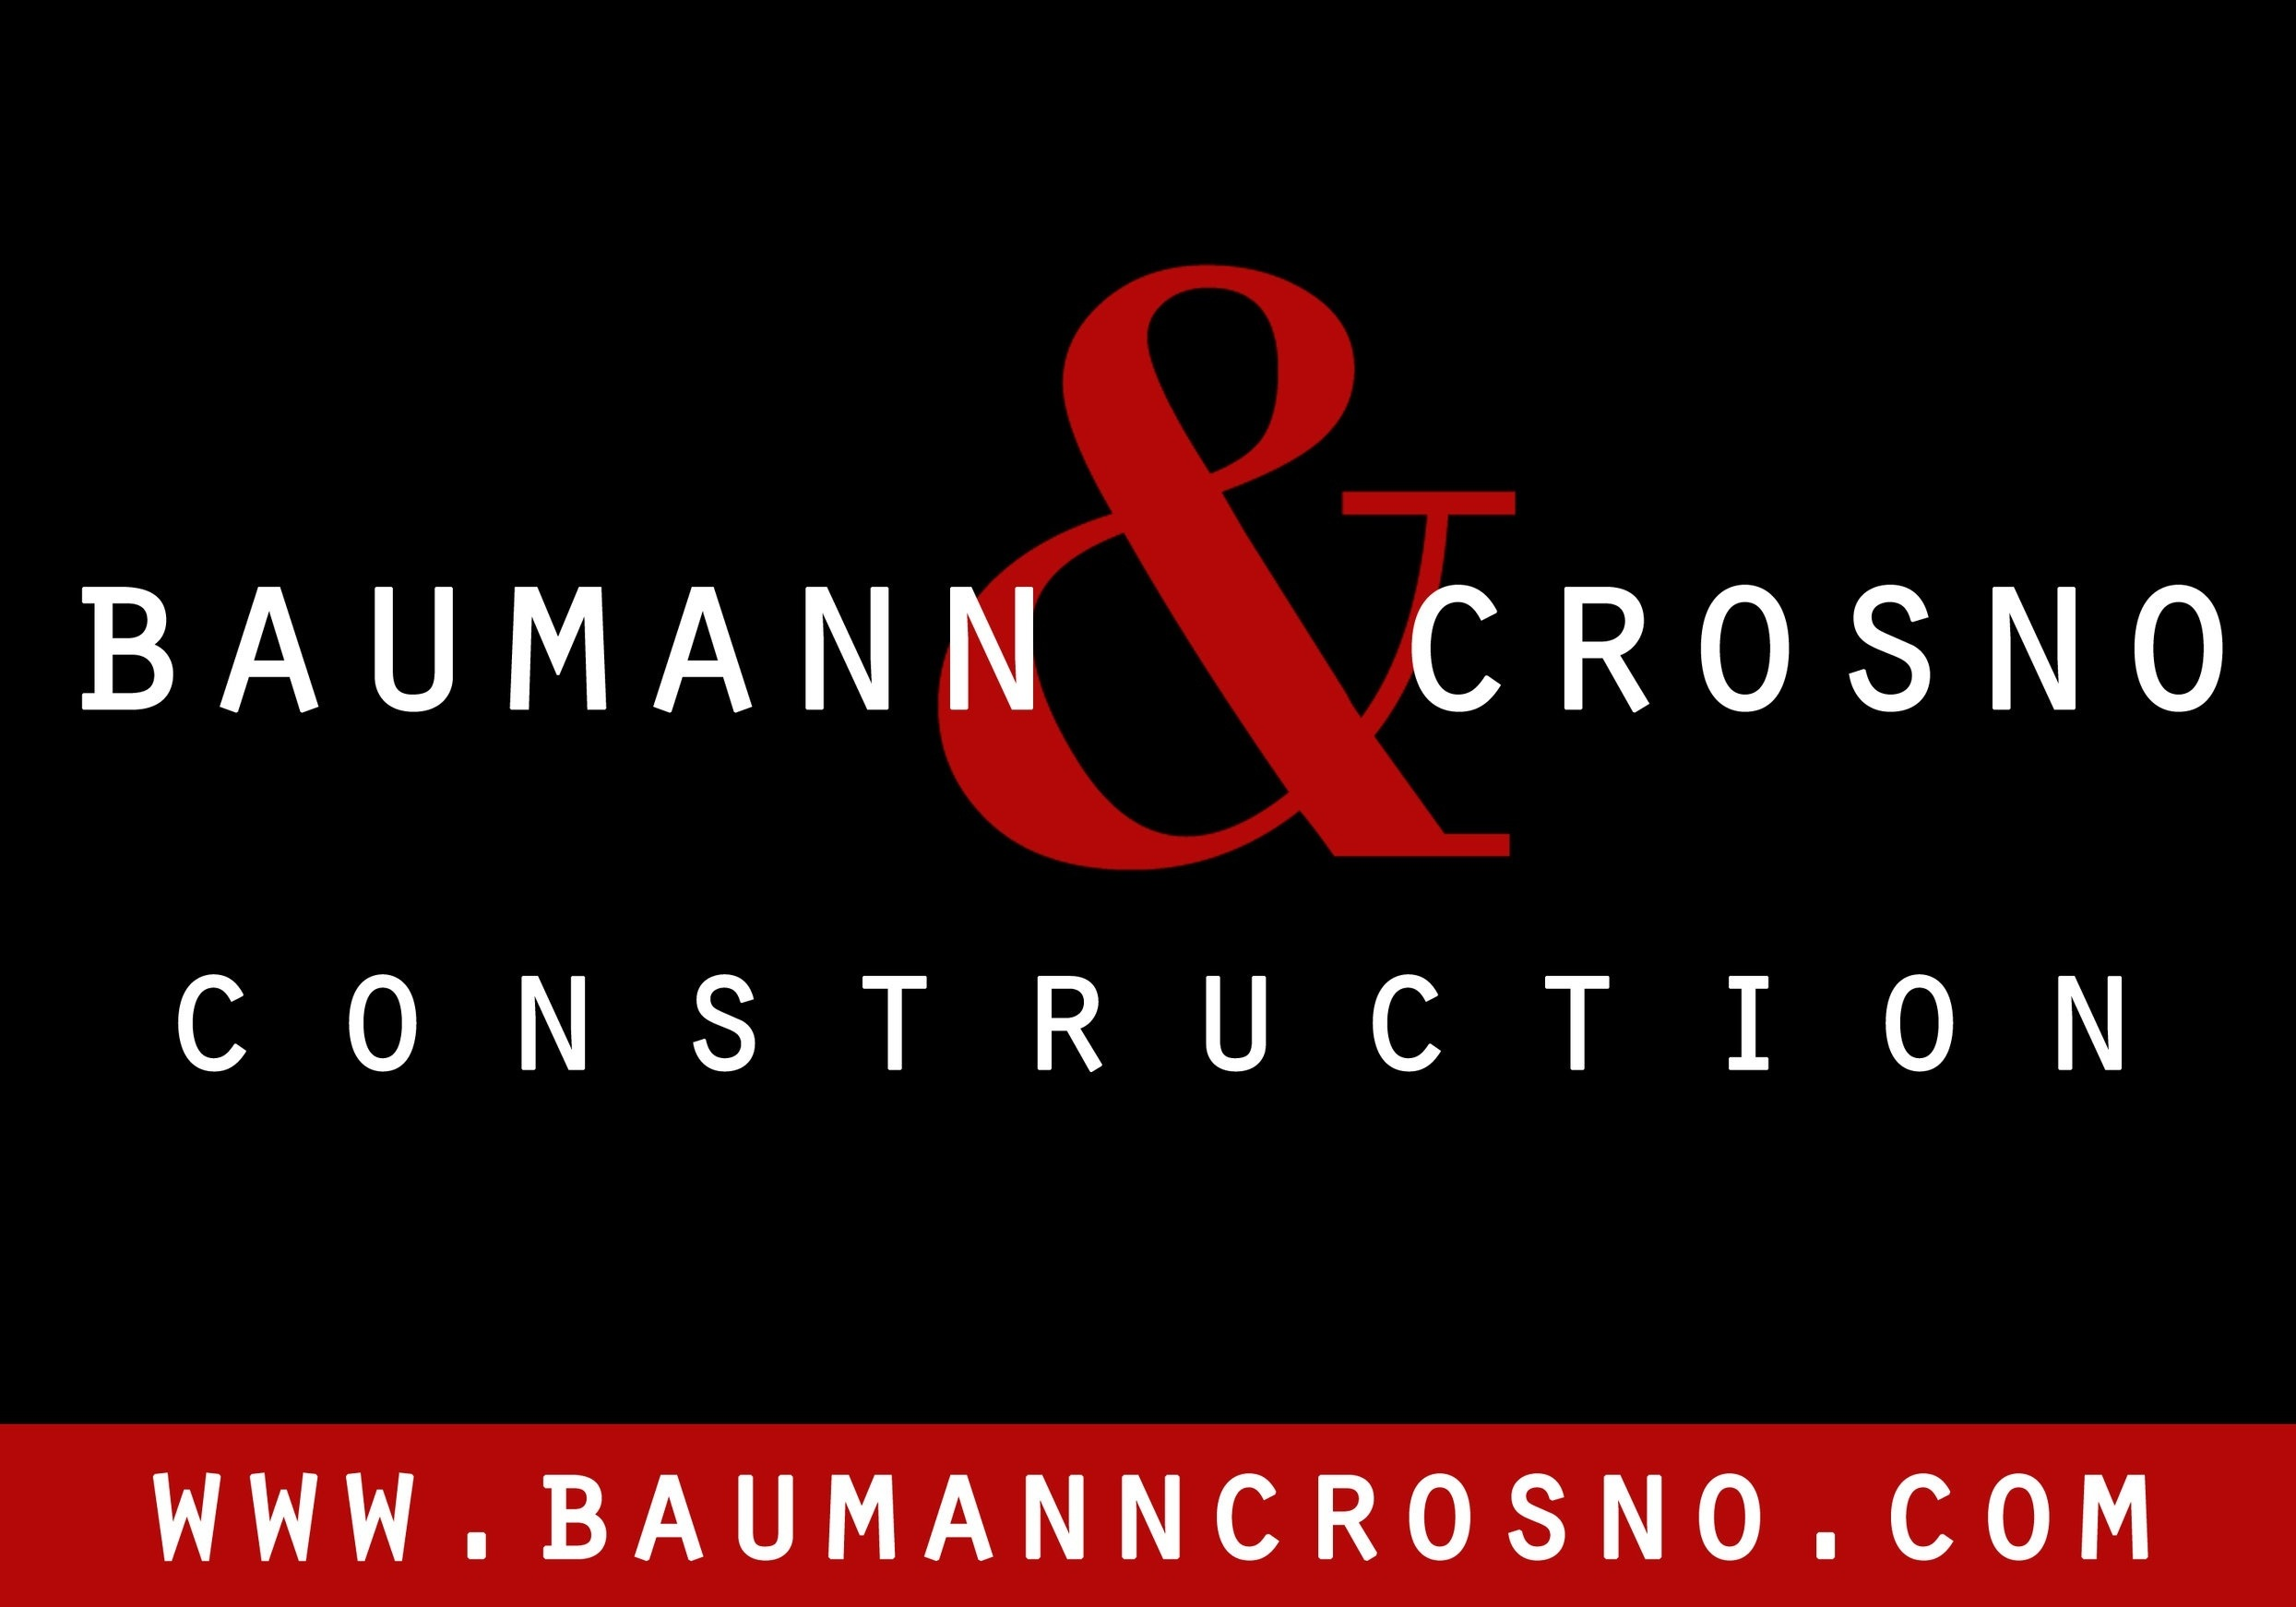 Baumann%252Band%252BCrosno%252BConstruction.jpg